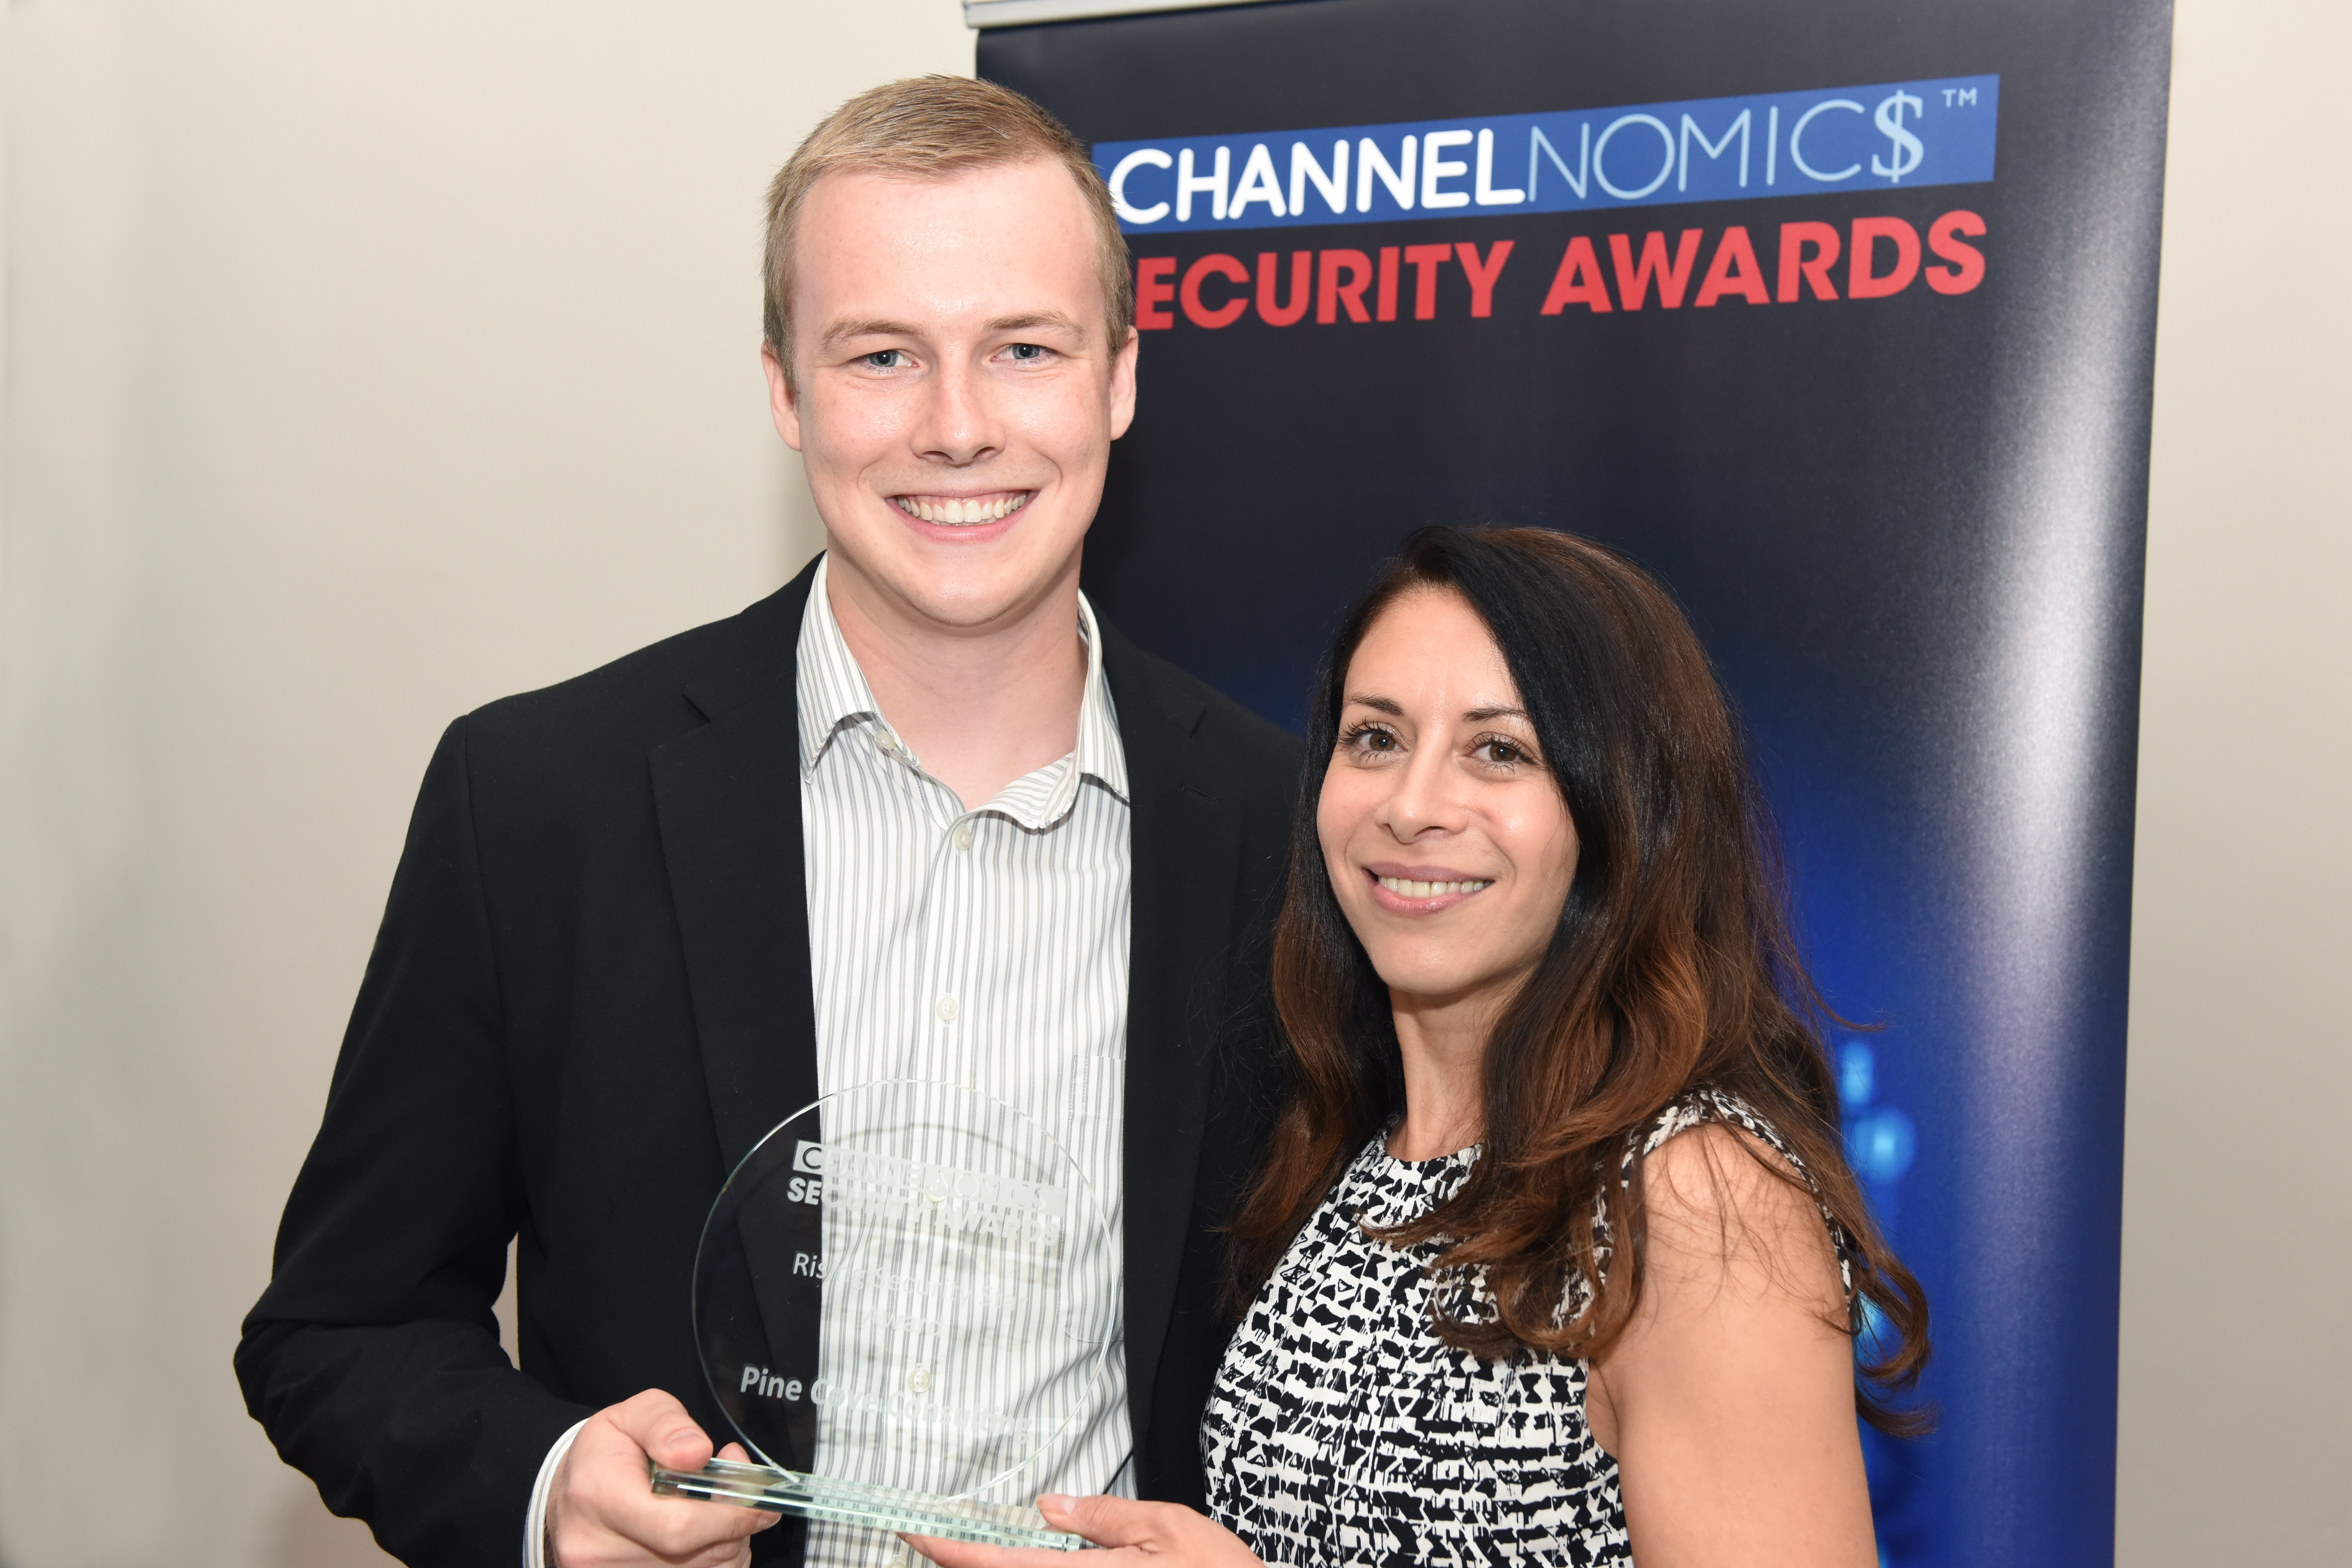 Rising Security Star Award